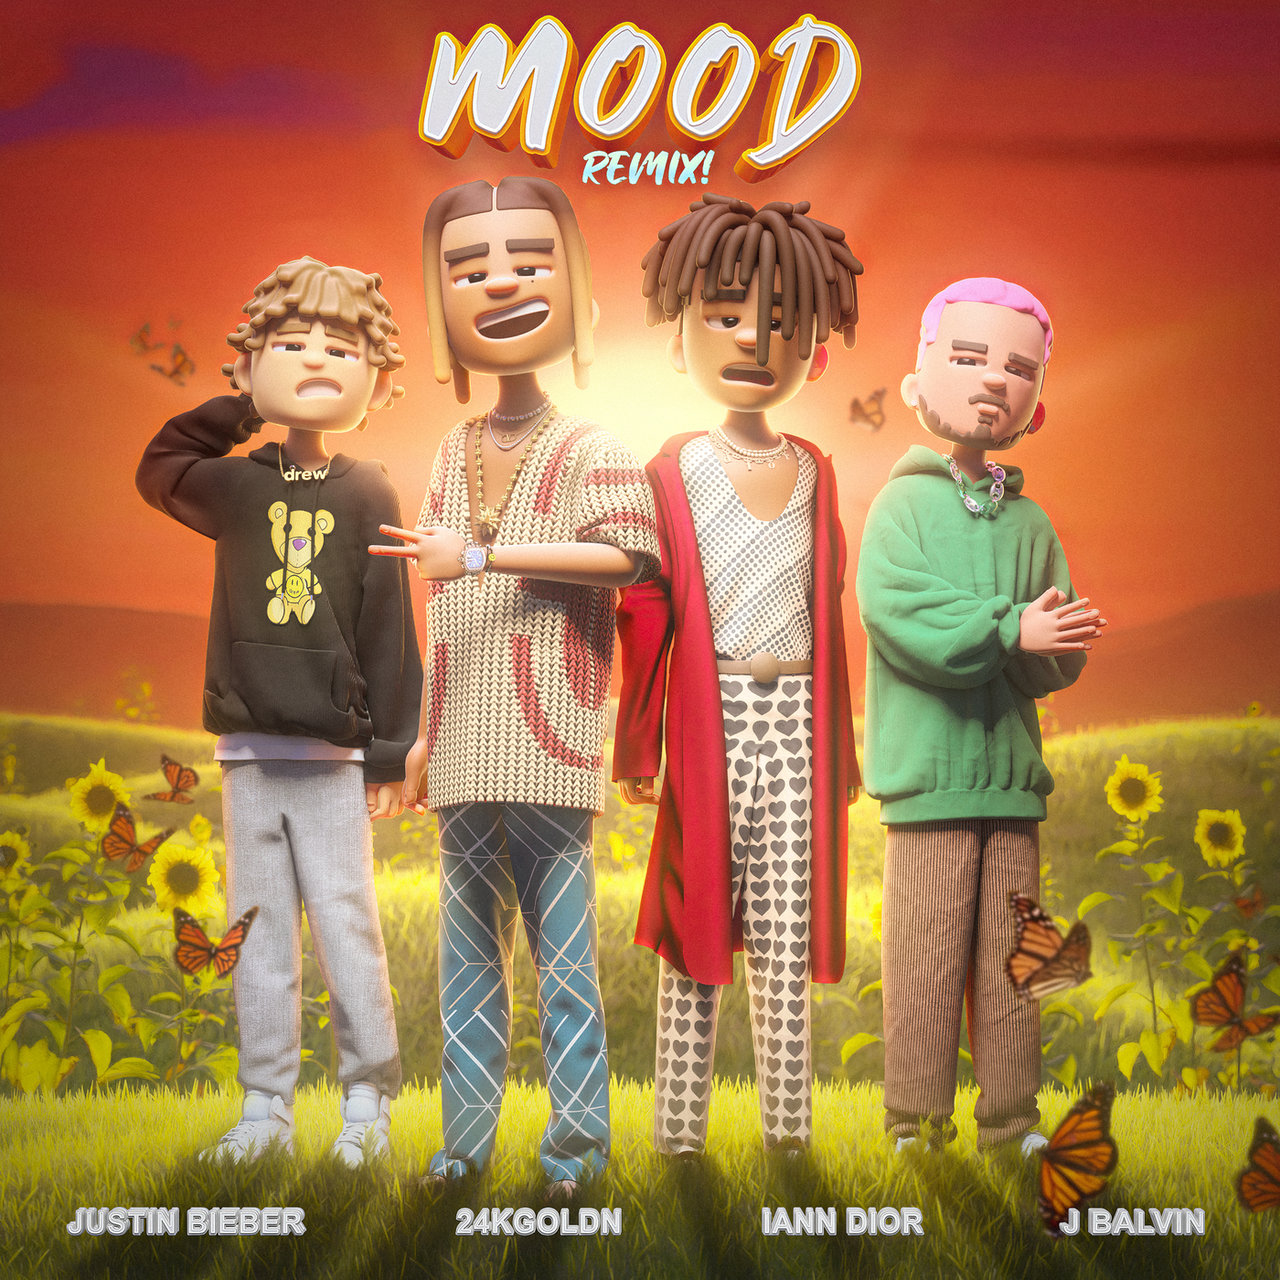 24kgoldn & Justin Bieber y J Balvin & Iann Dior - Mood (Remix).mp3